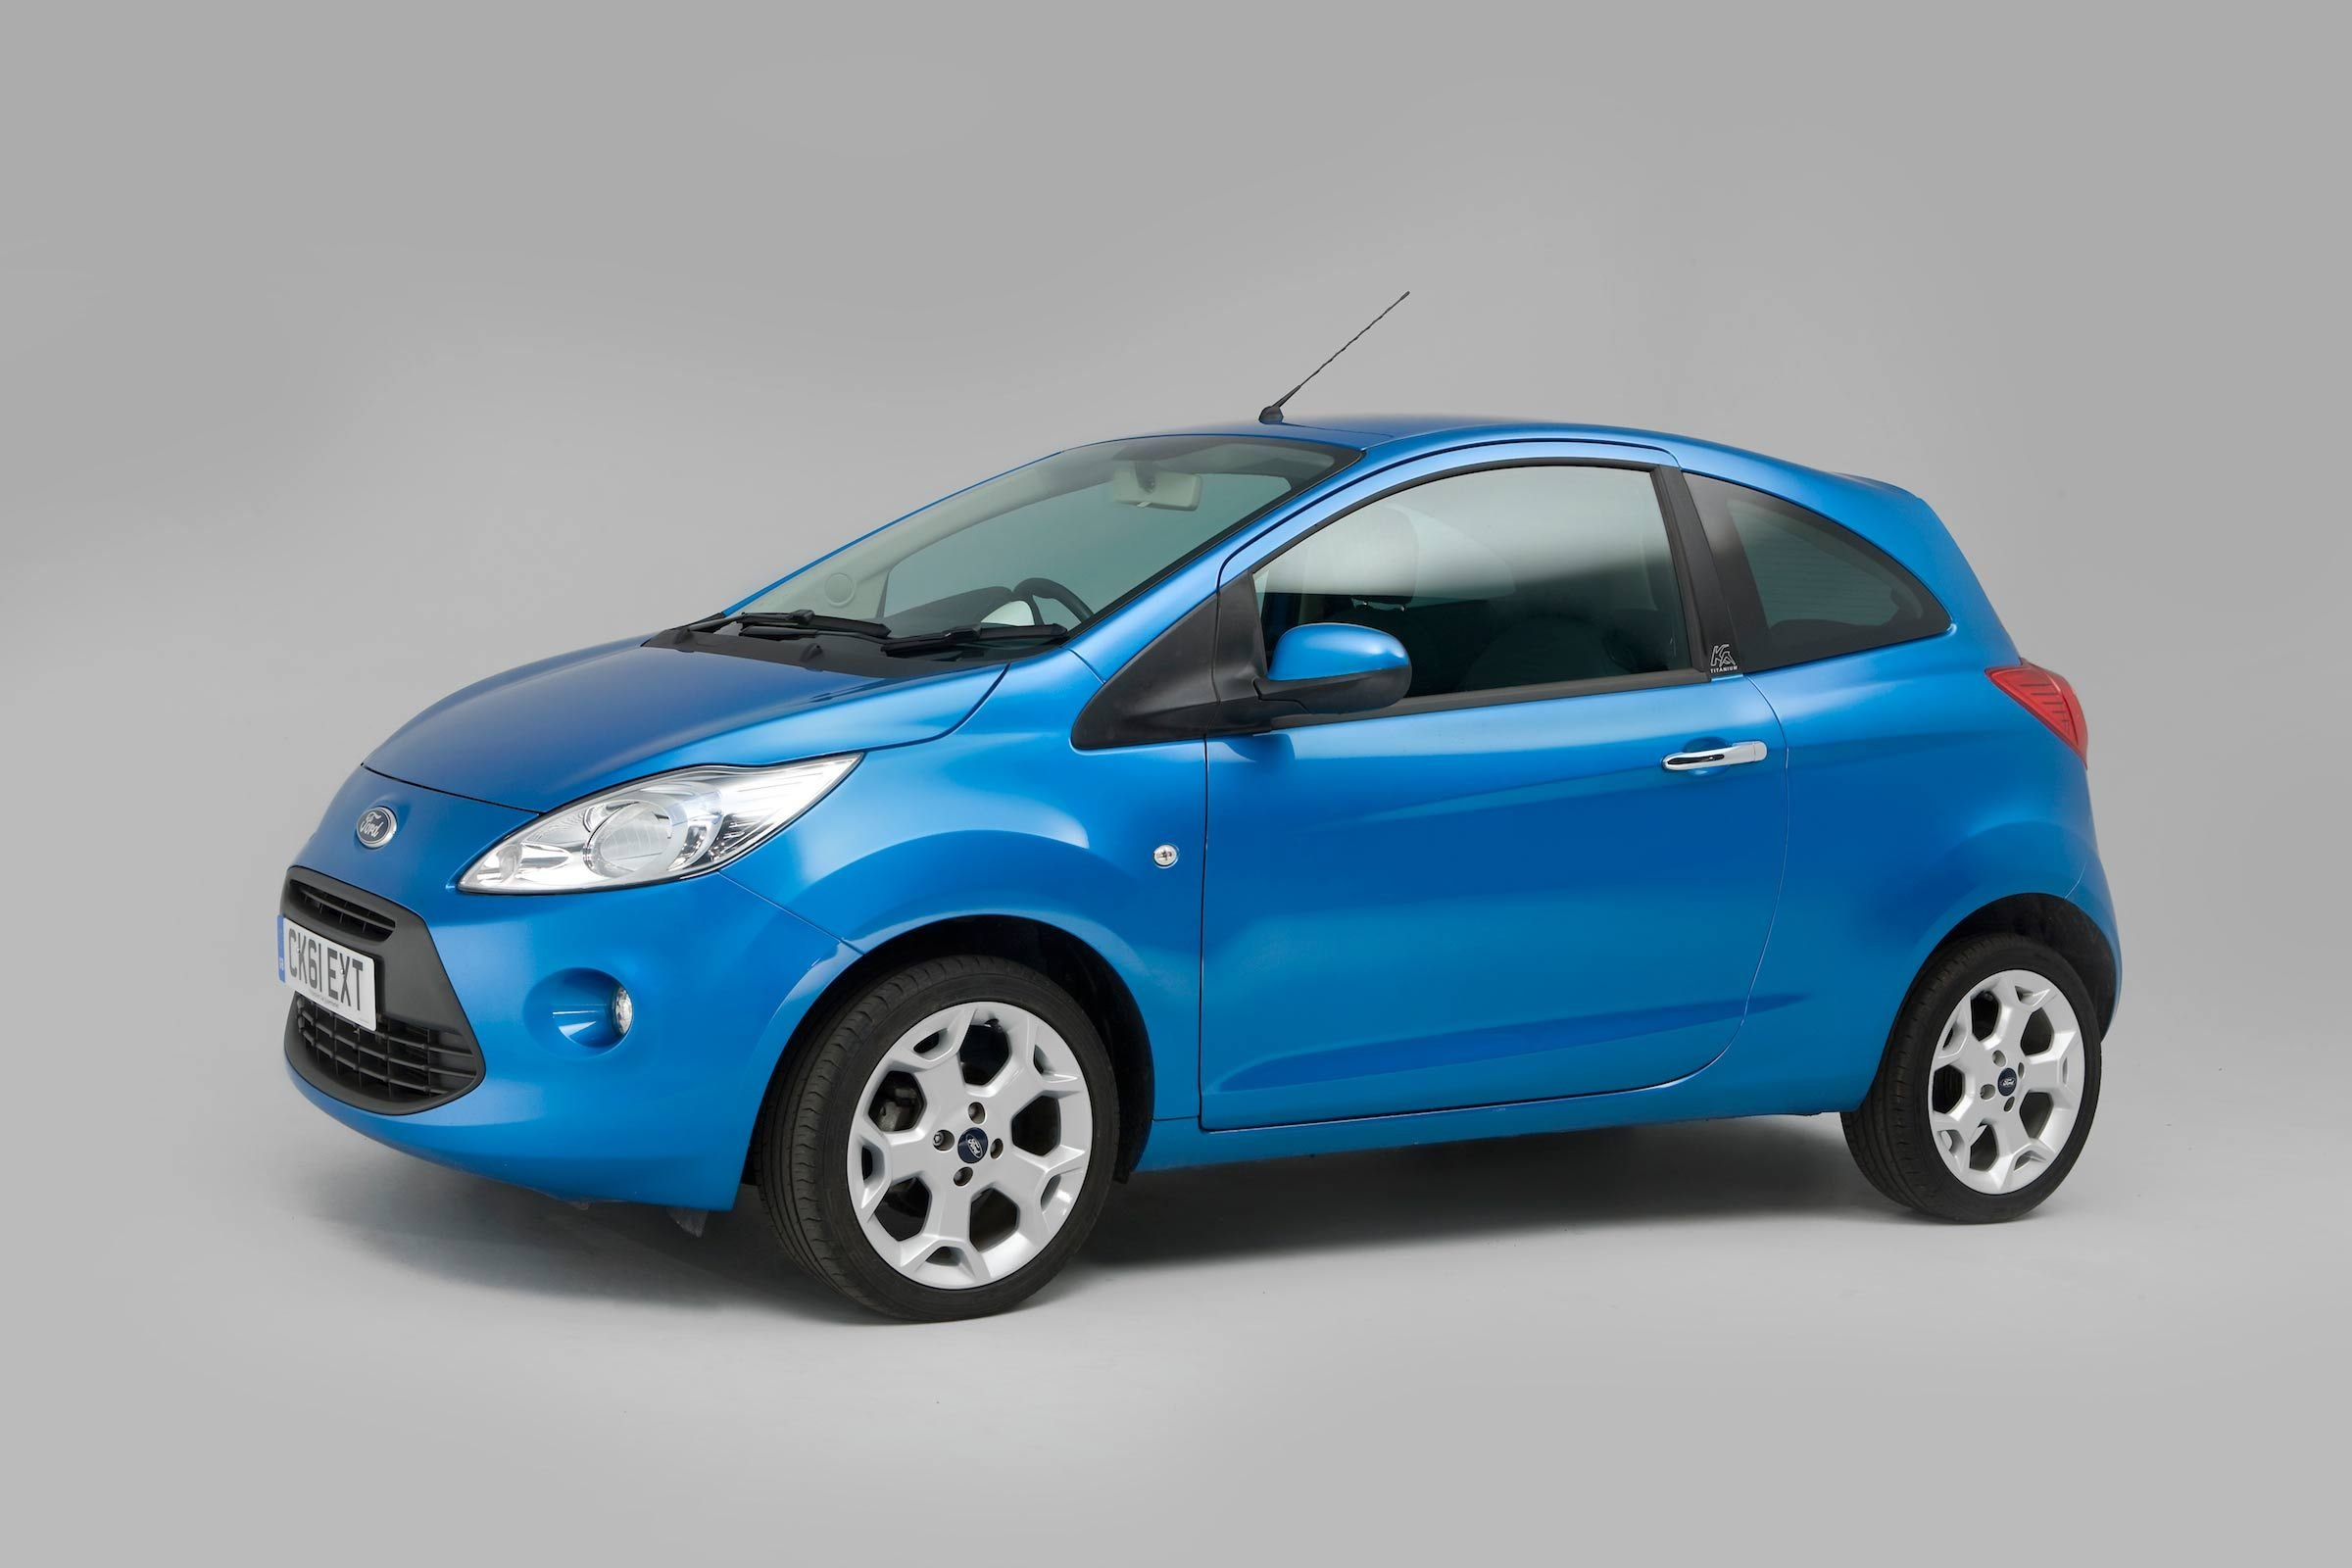 New Used Ford Ka Buying Guide 2009 2016 Mk2 Carbuyer On This Month